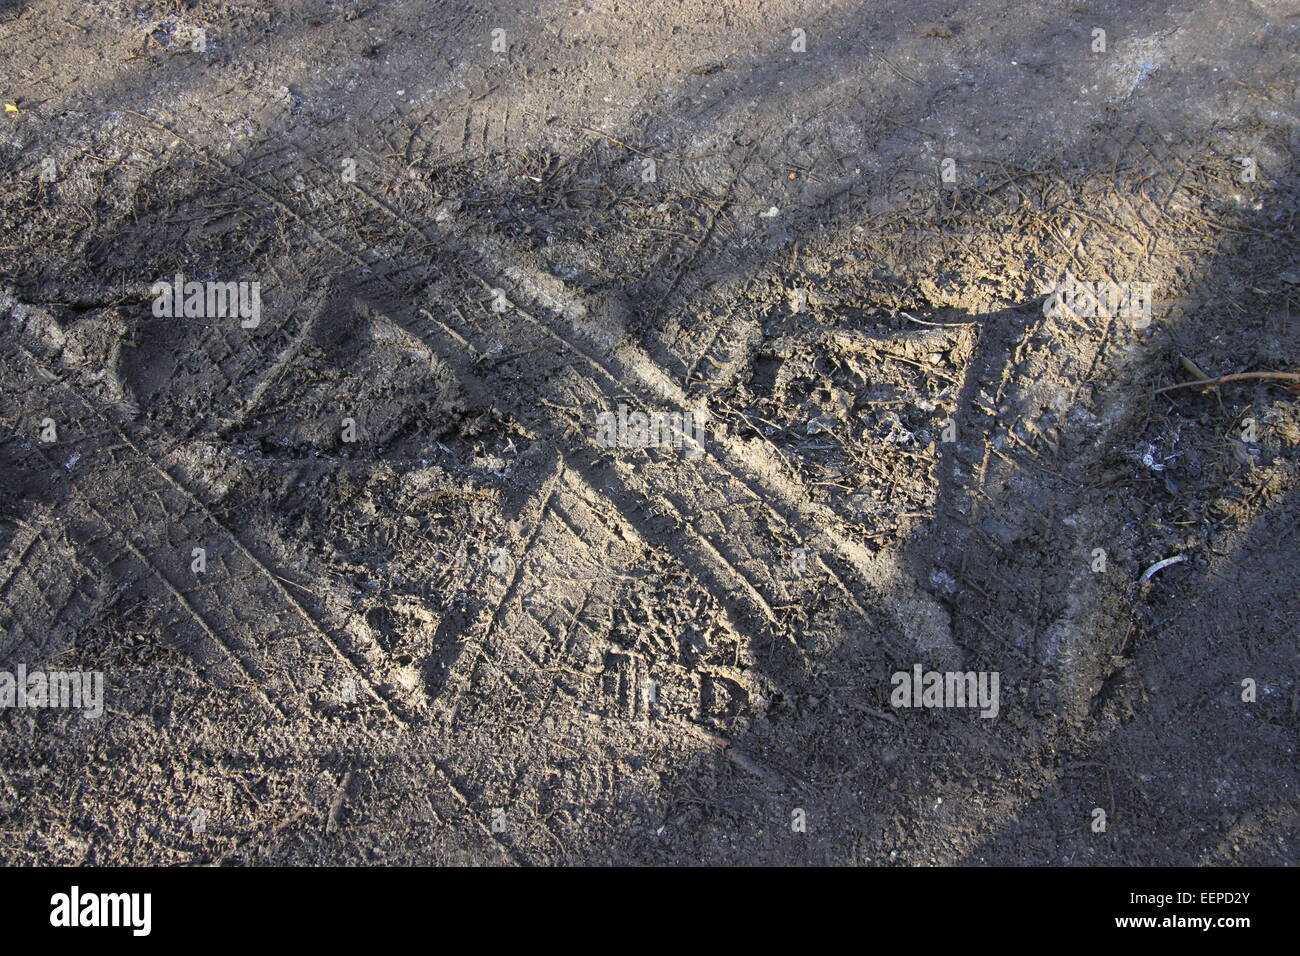 Tyre tracks in mud making a letter 'X' - Stock Image